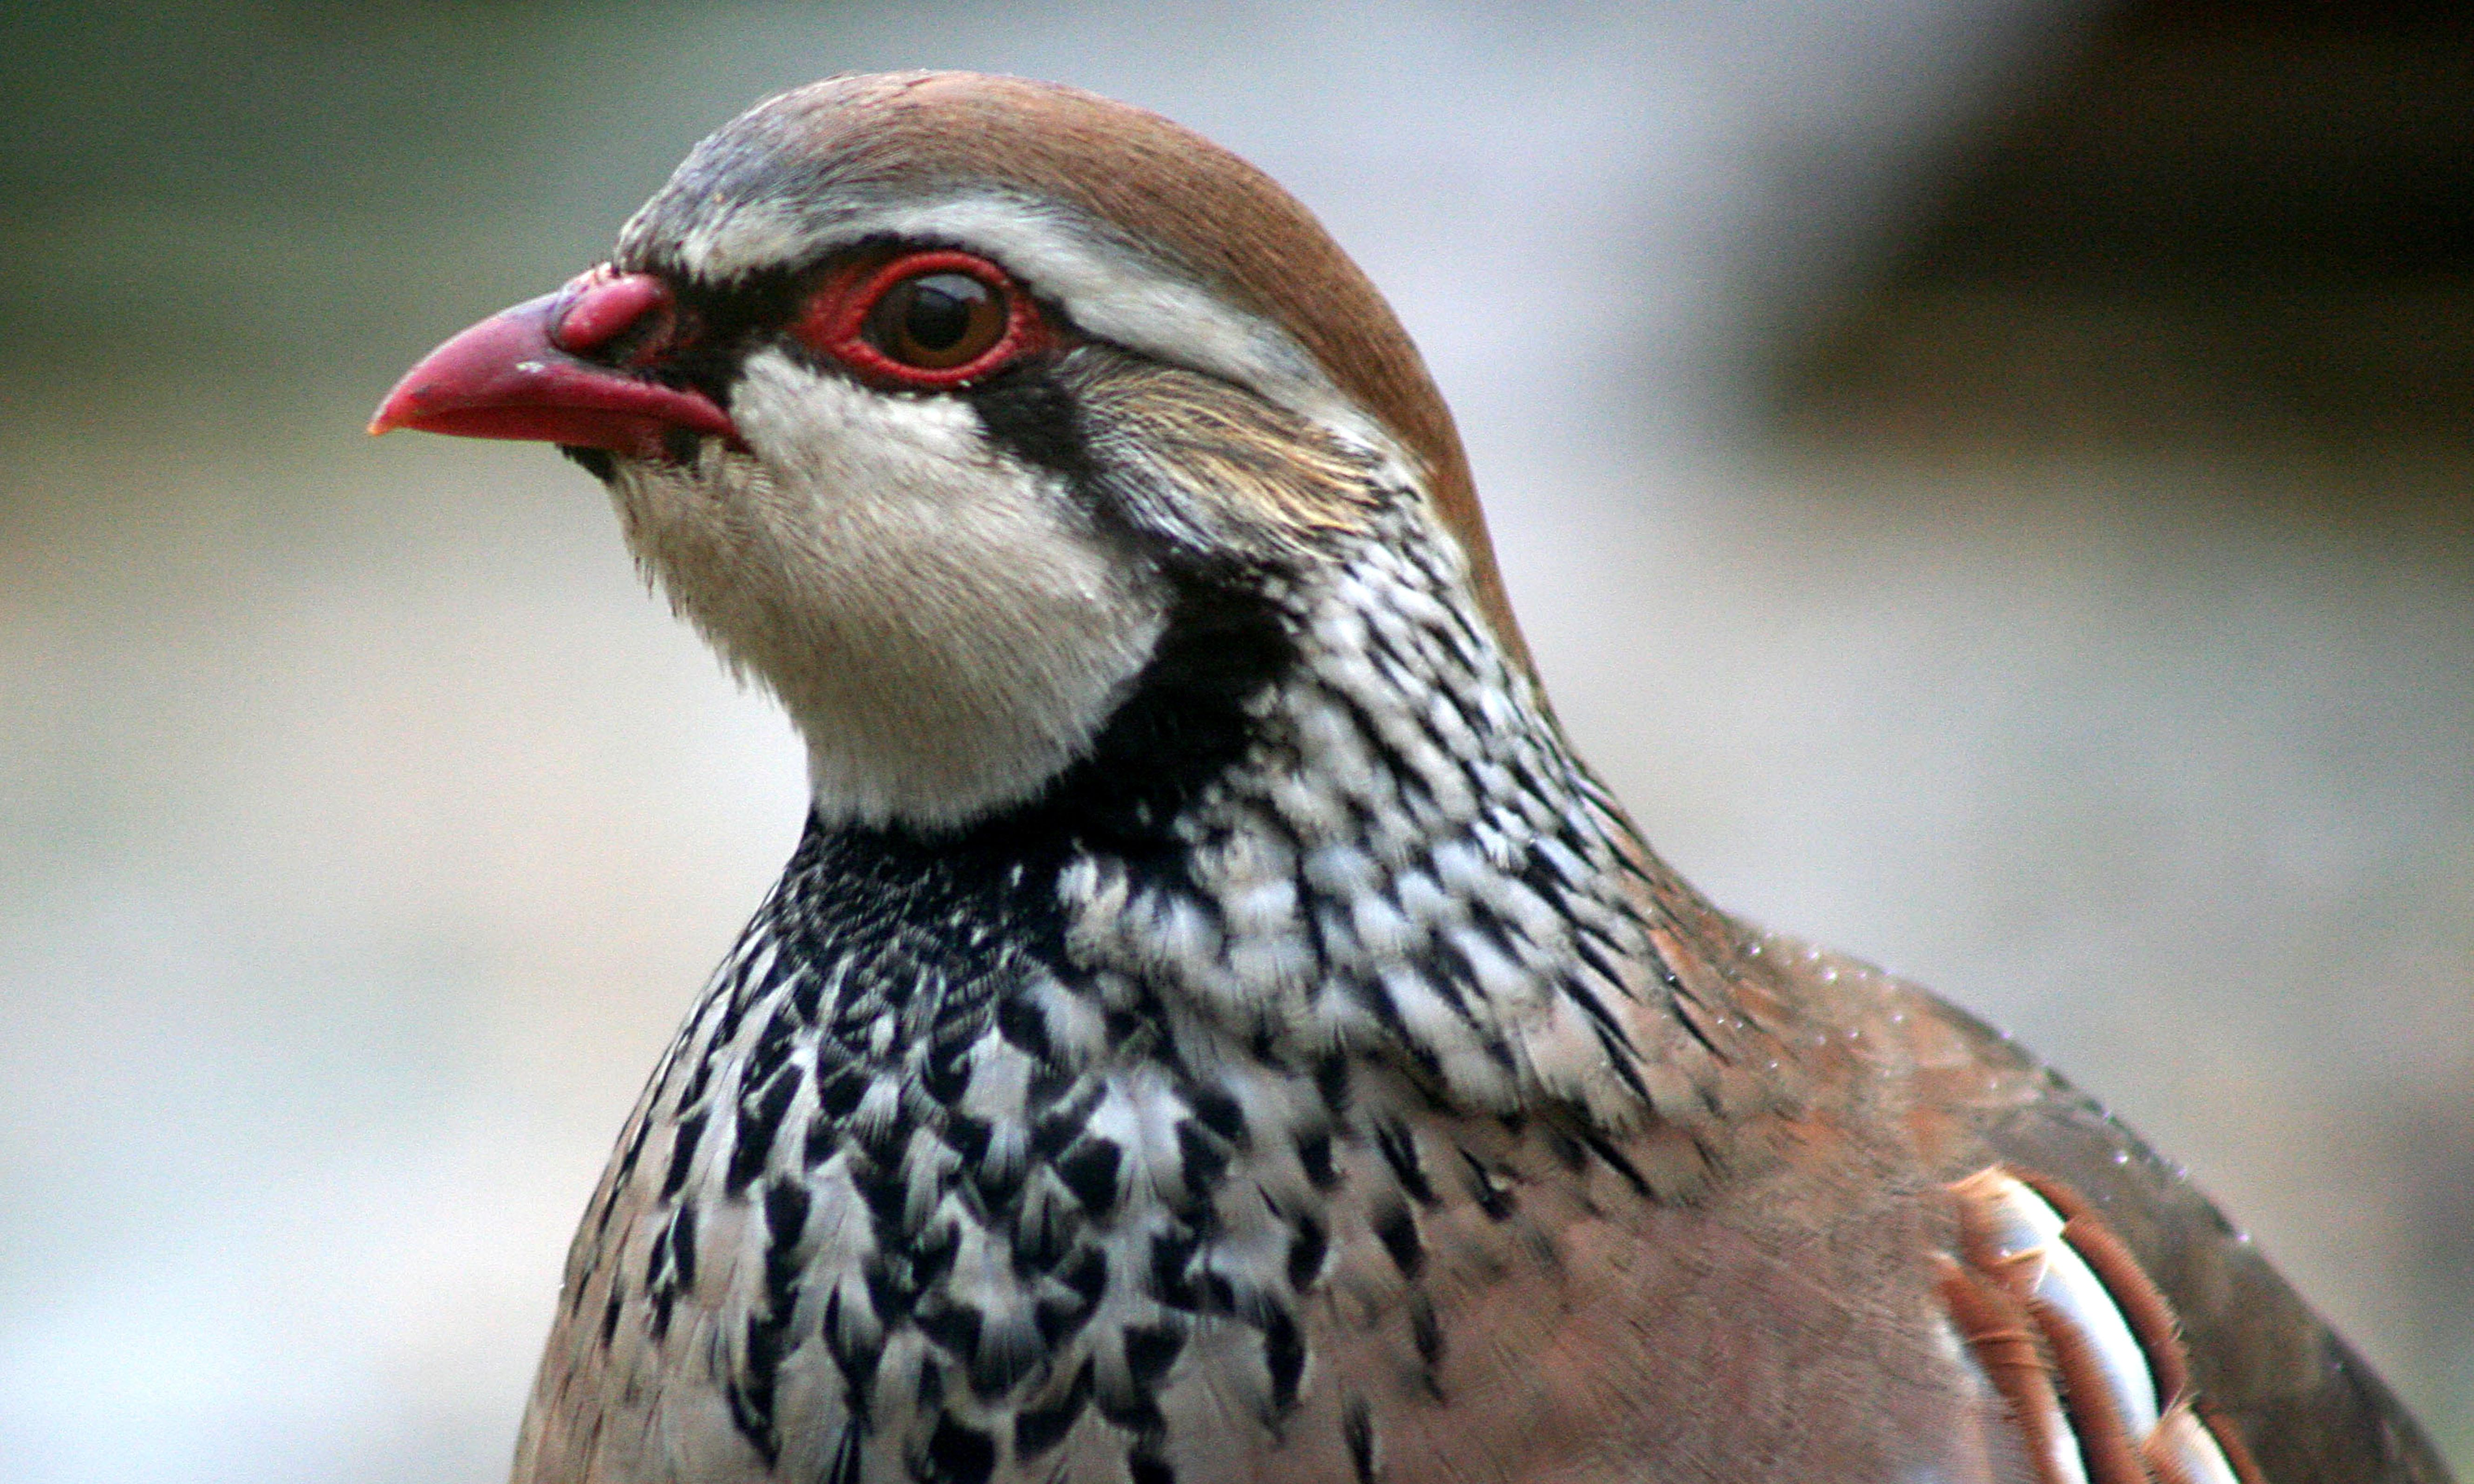 Defra to review release of game birds after legal threat